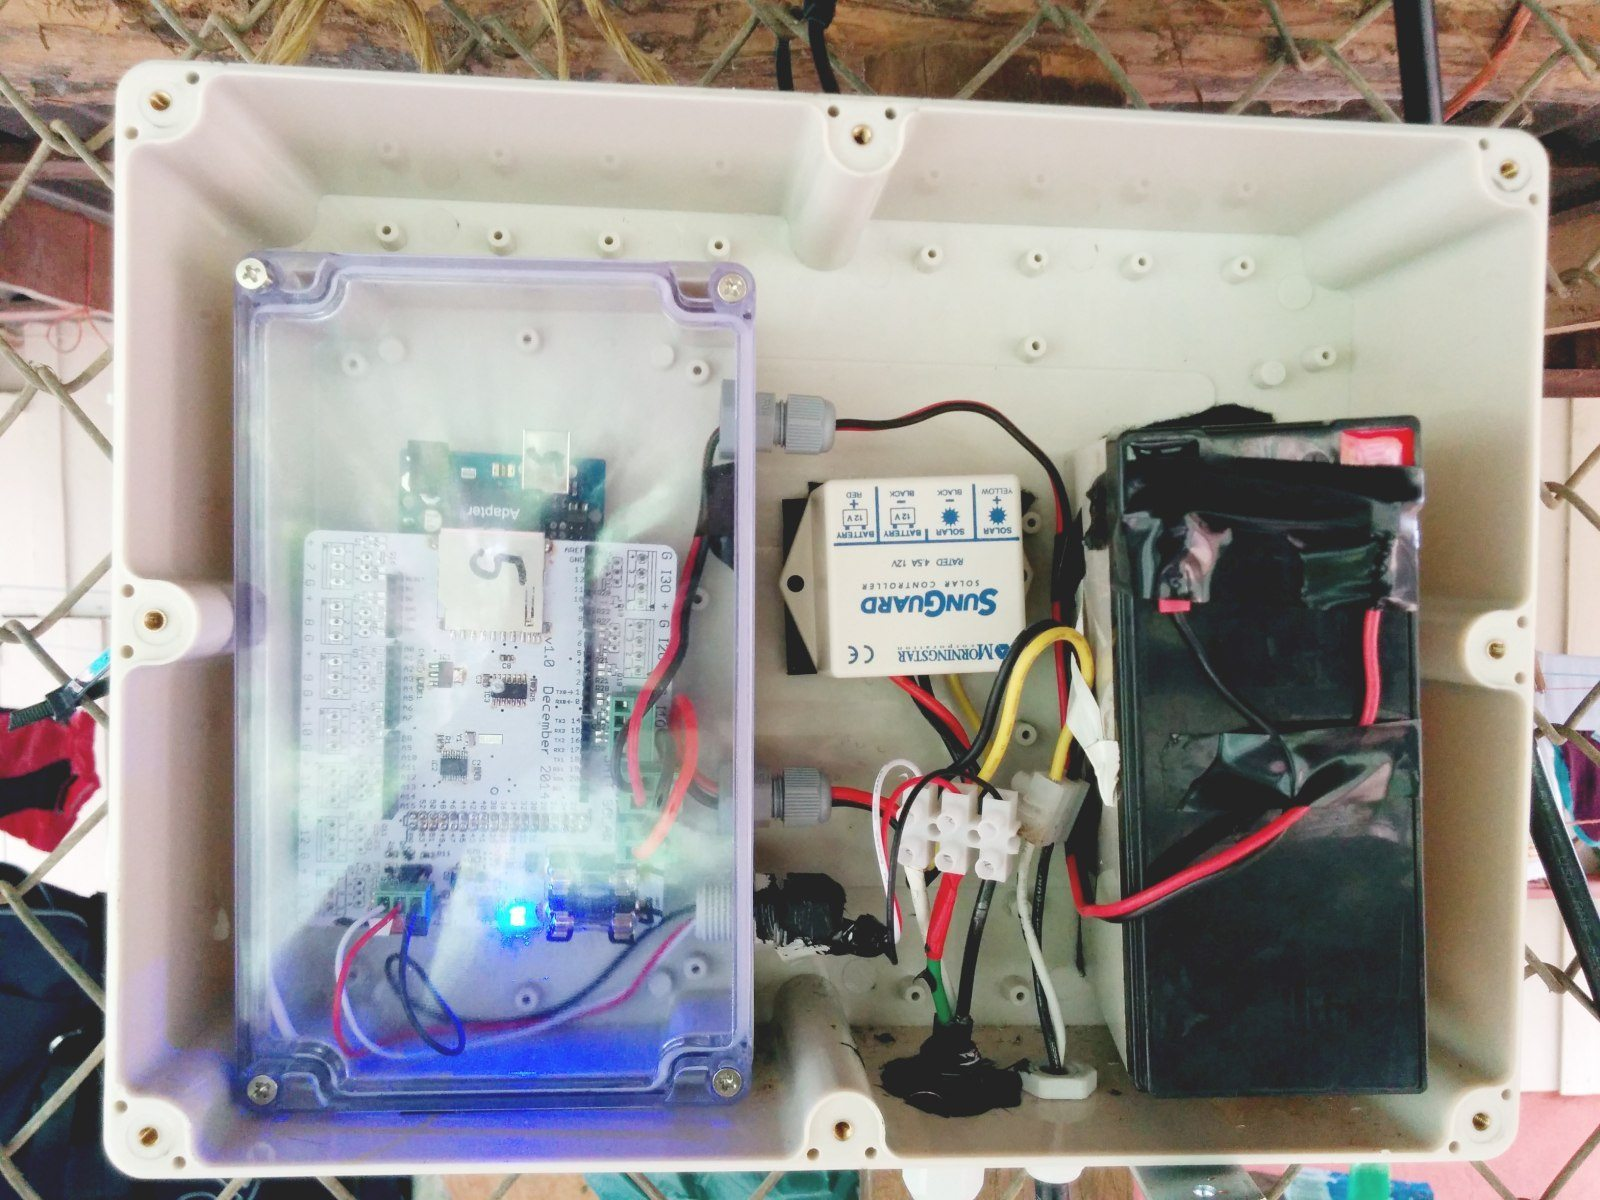 Researchers Develop An Inexpensive Method To Measure How Much Water Wiring Programming Language The Equipment Is Powered By Solar Panels And Uses Open Source Called Arduino Which Used Program Robots Sensors Without A